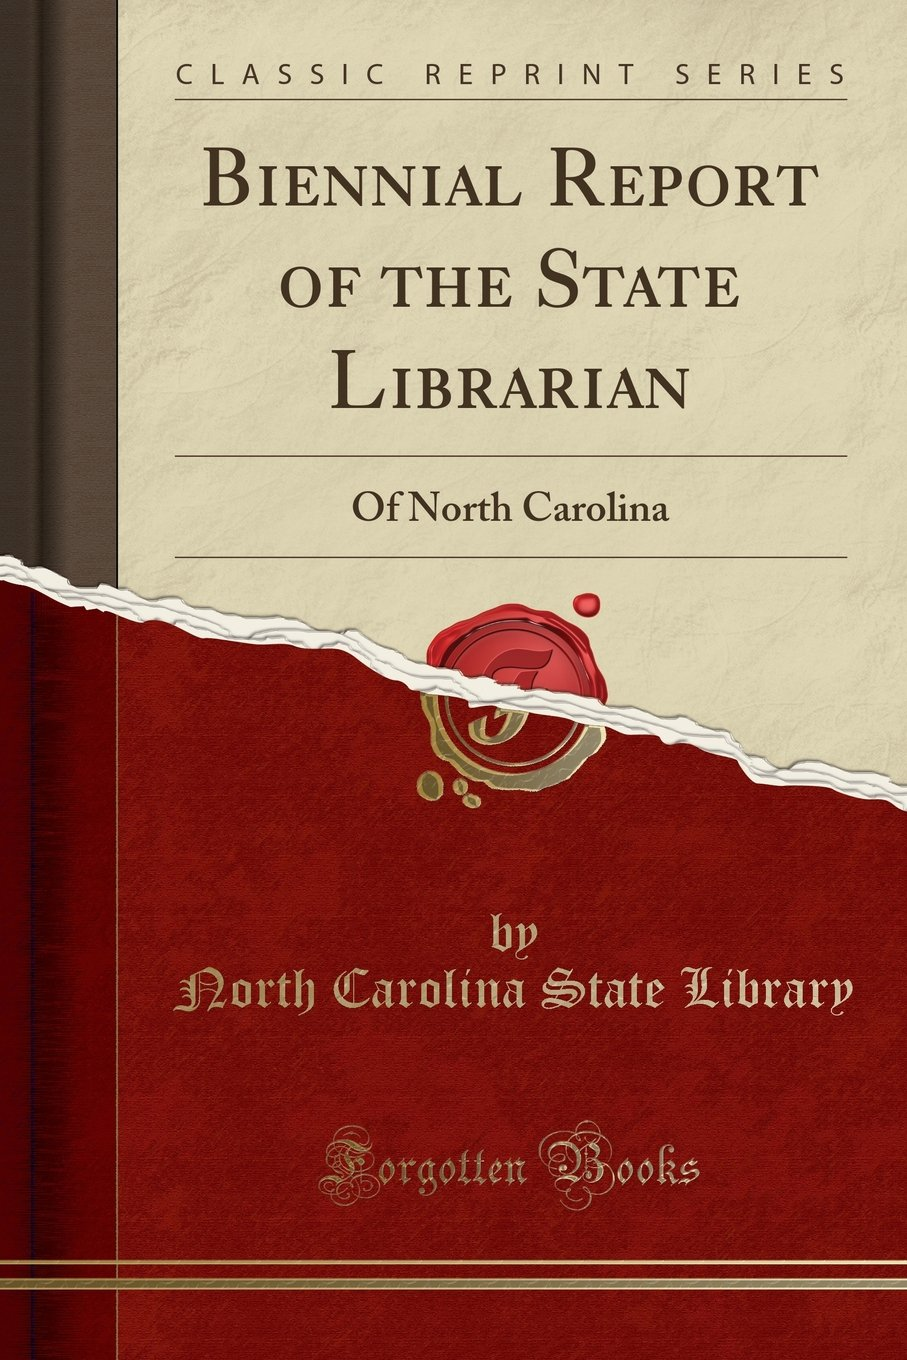 Biennial Report of the State Librarian: Of North Carolina